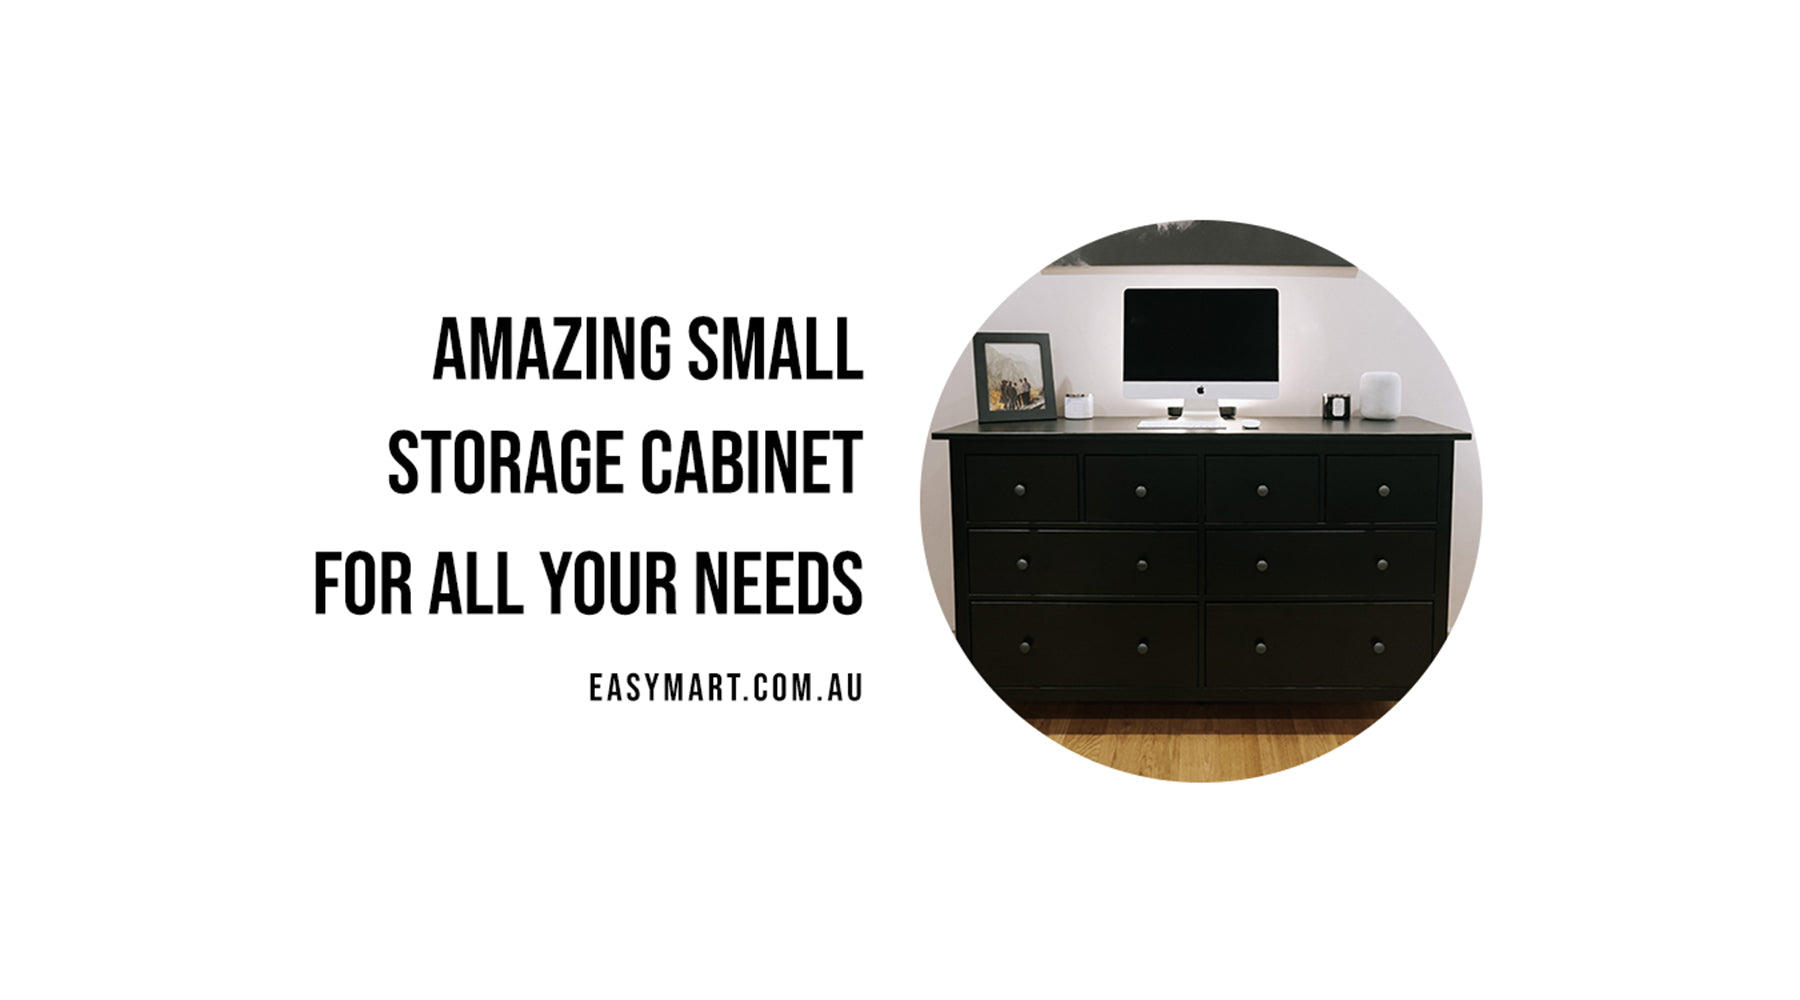 Amazing Small Storage Cabinet for all Your Needs